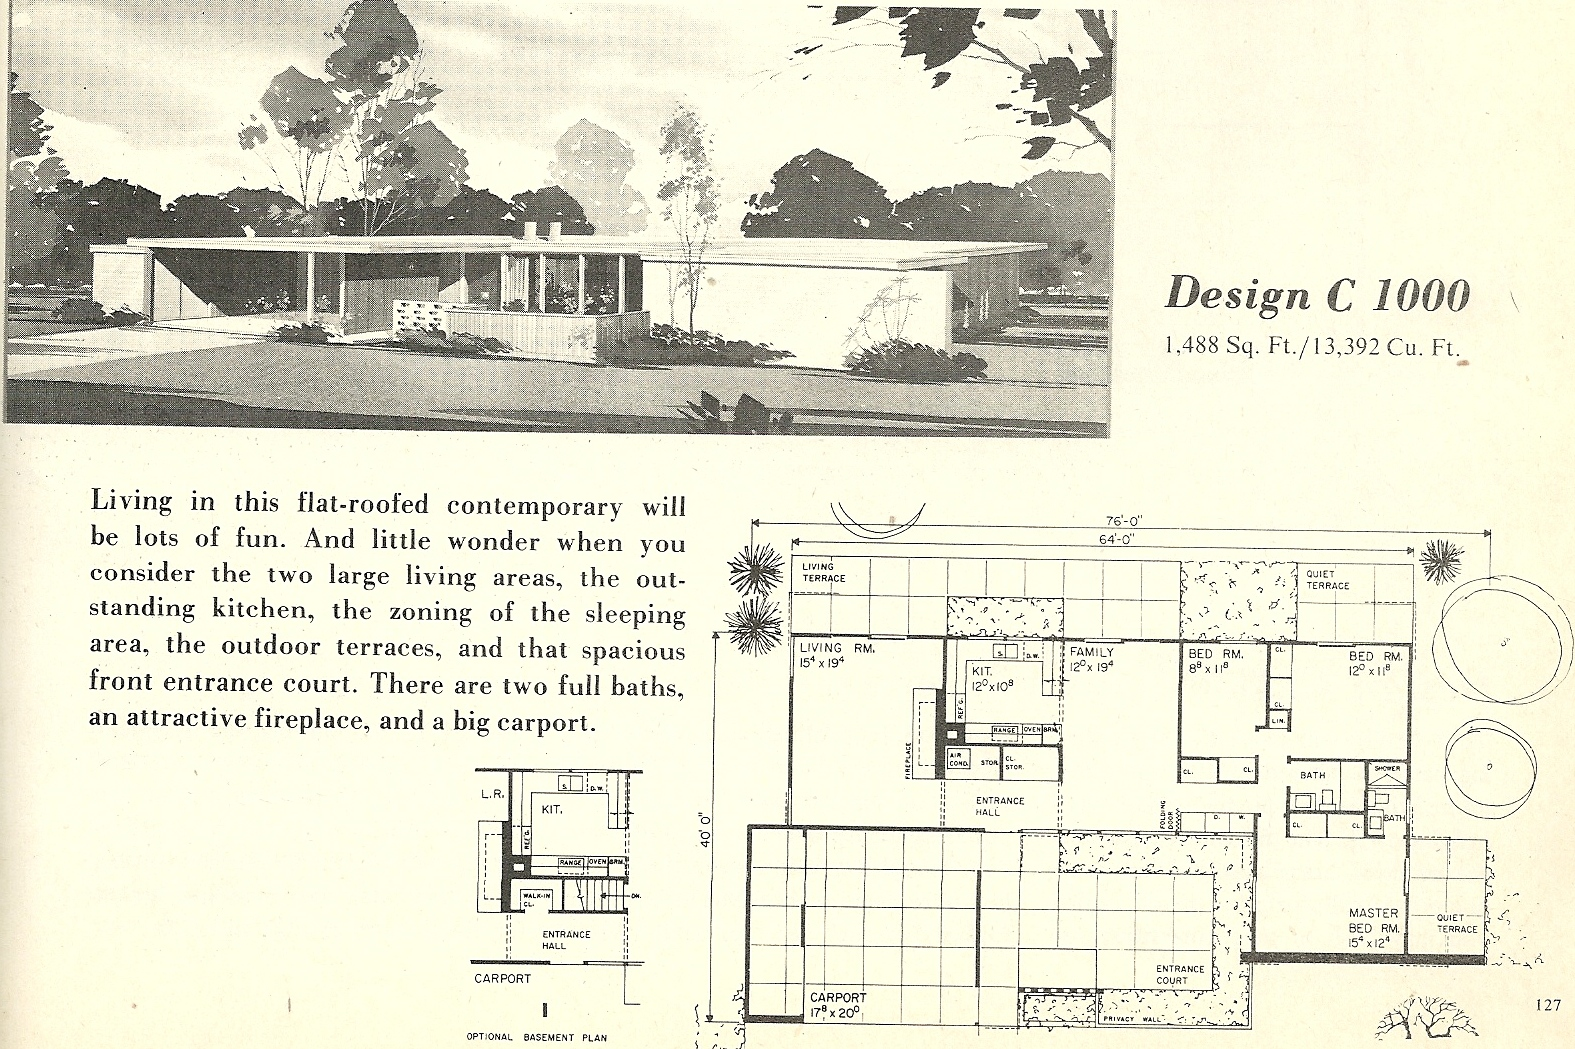 Vintage house plans 1000 antique alter ego for Vintage home plans